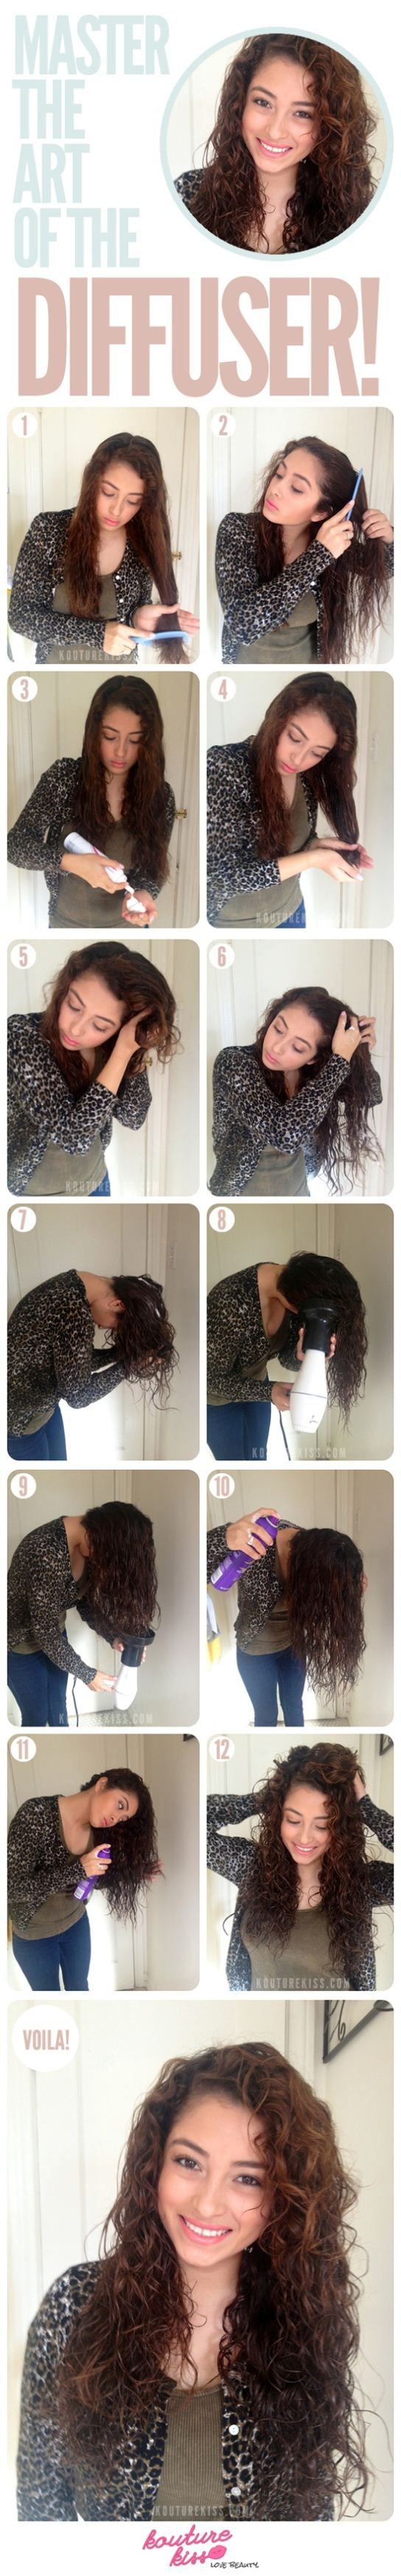 Add a little gel after the mousse and you get a longer lasting scrunch. The diffuser is a must but if you do not have one just keep the blow dryer far away on low warm setting while scrunching.